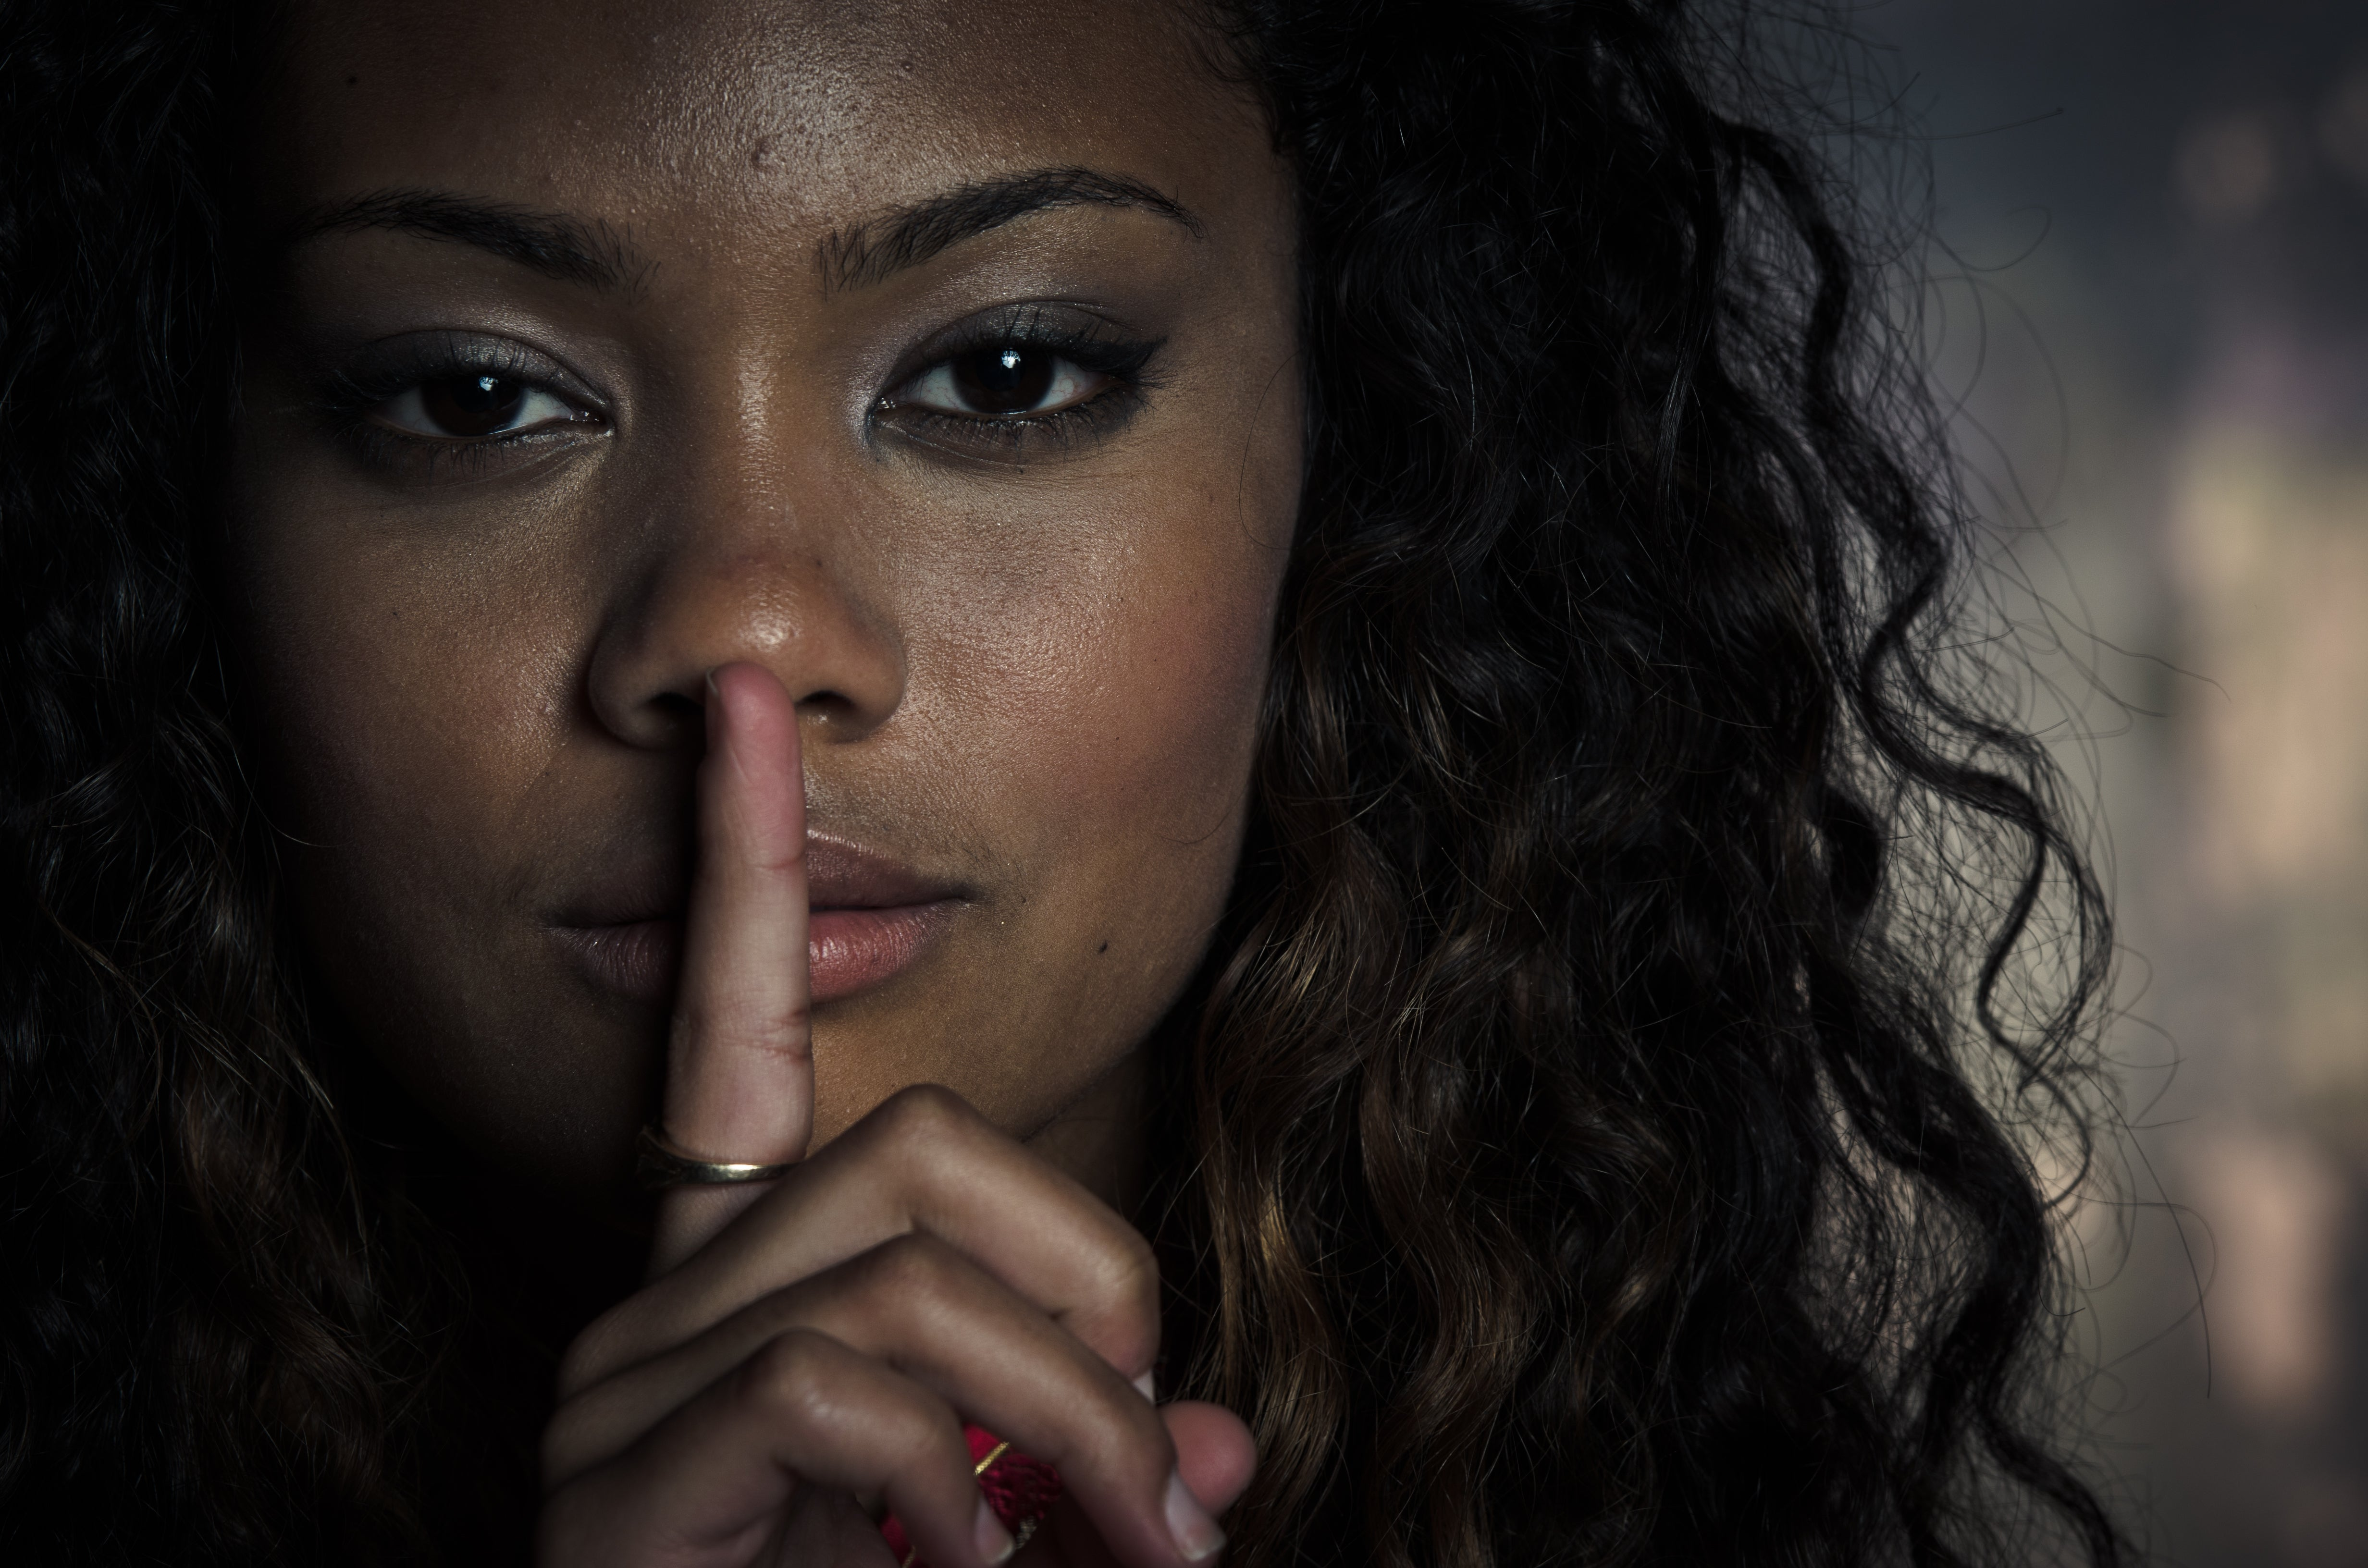 #WhyWomenDontReport Addresses Ugly Truths About How Society Shames Survivors Into Silence